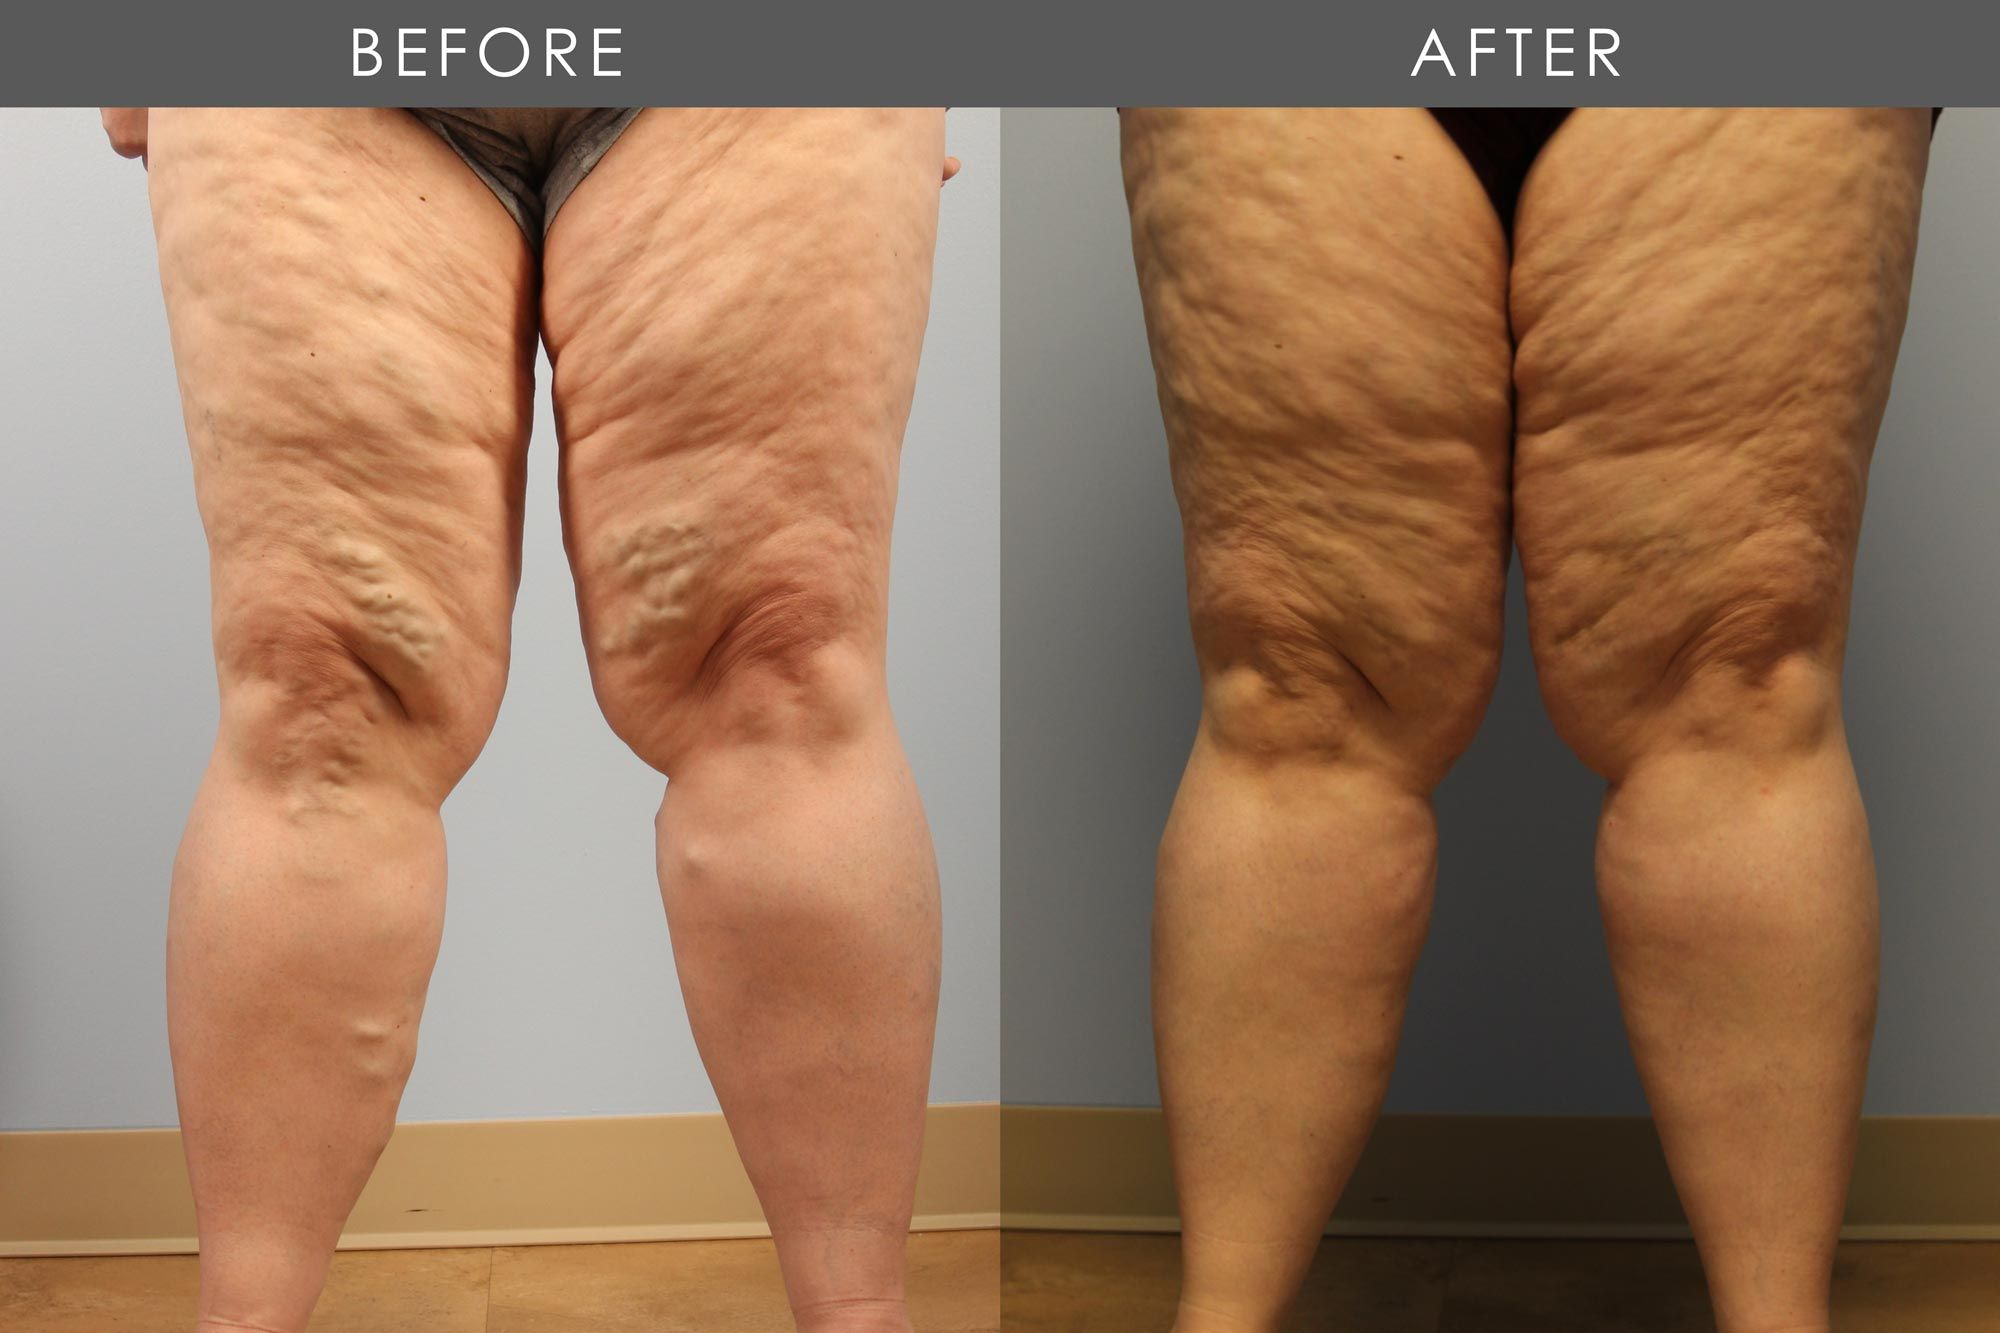 Before and After Varicose Vein Treatment treatment #2